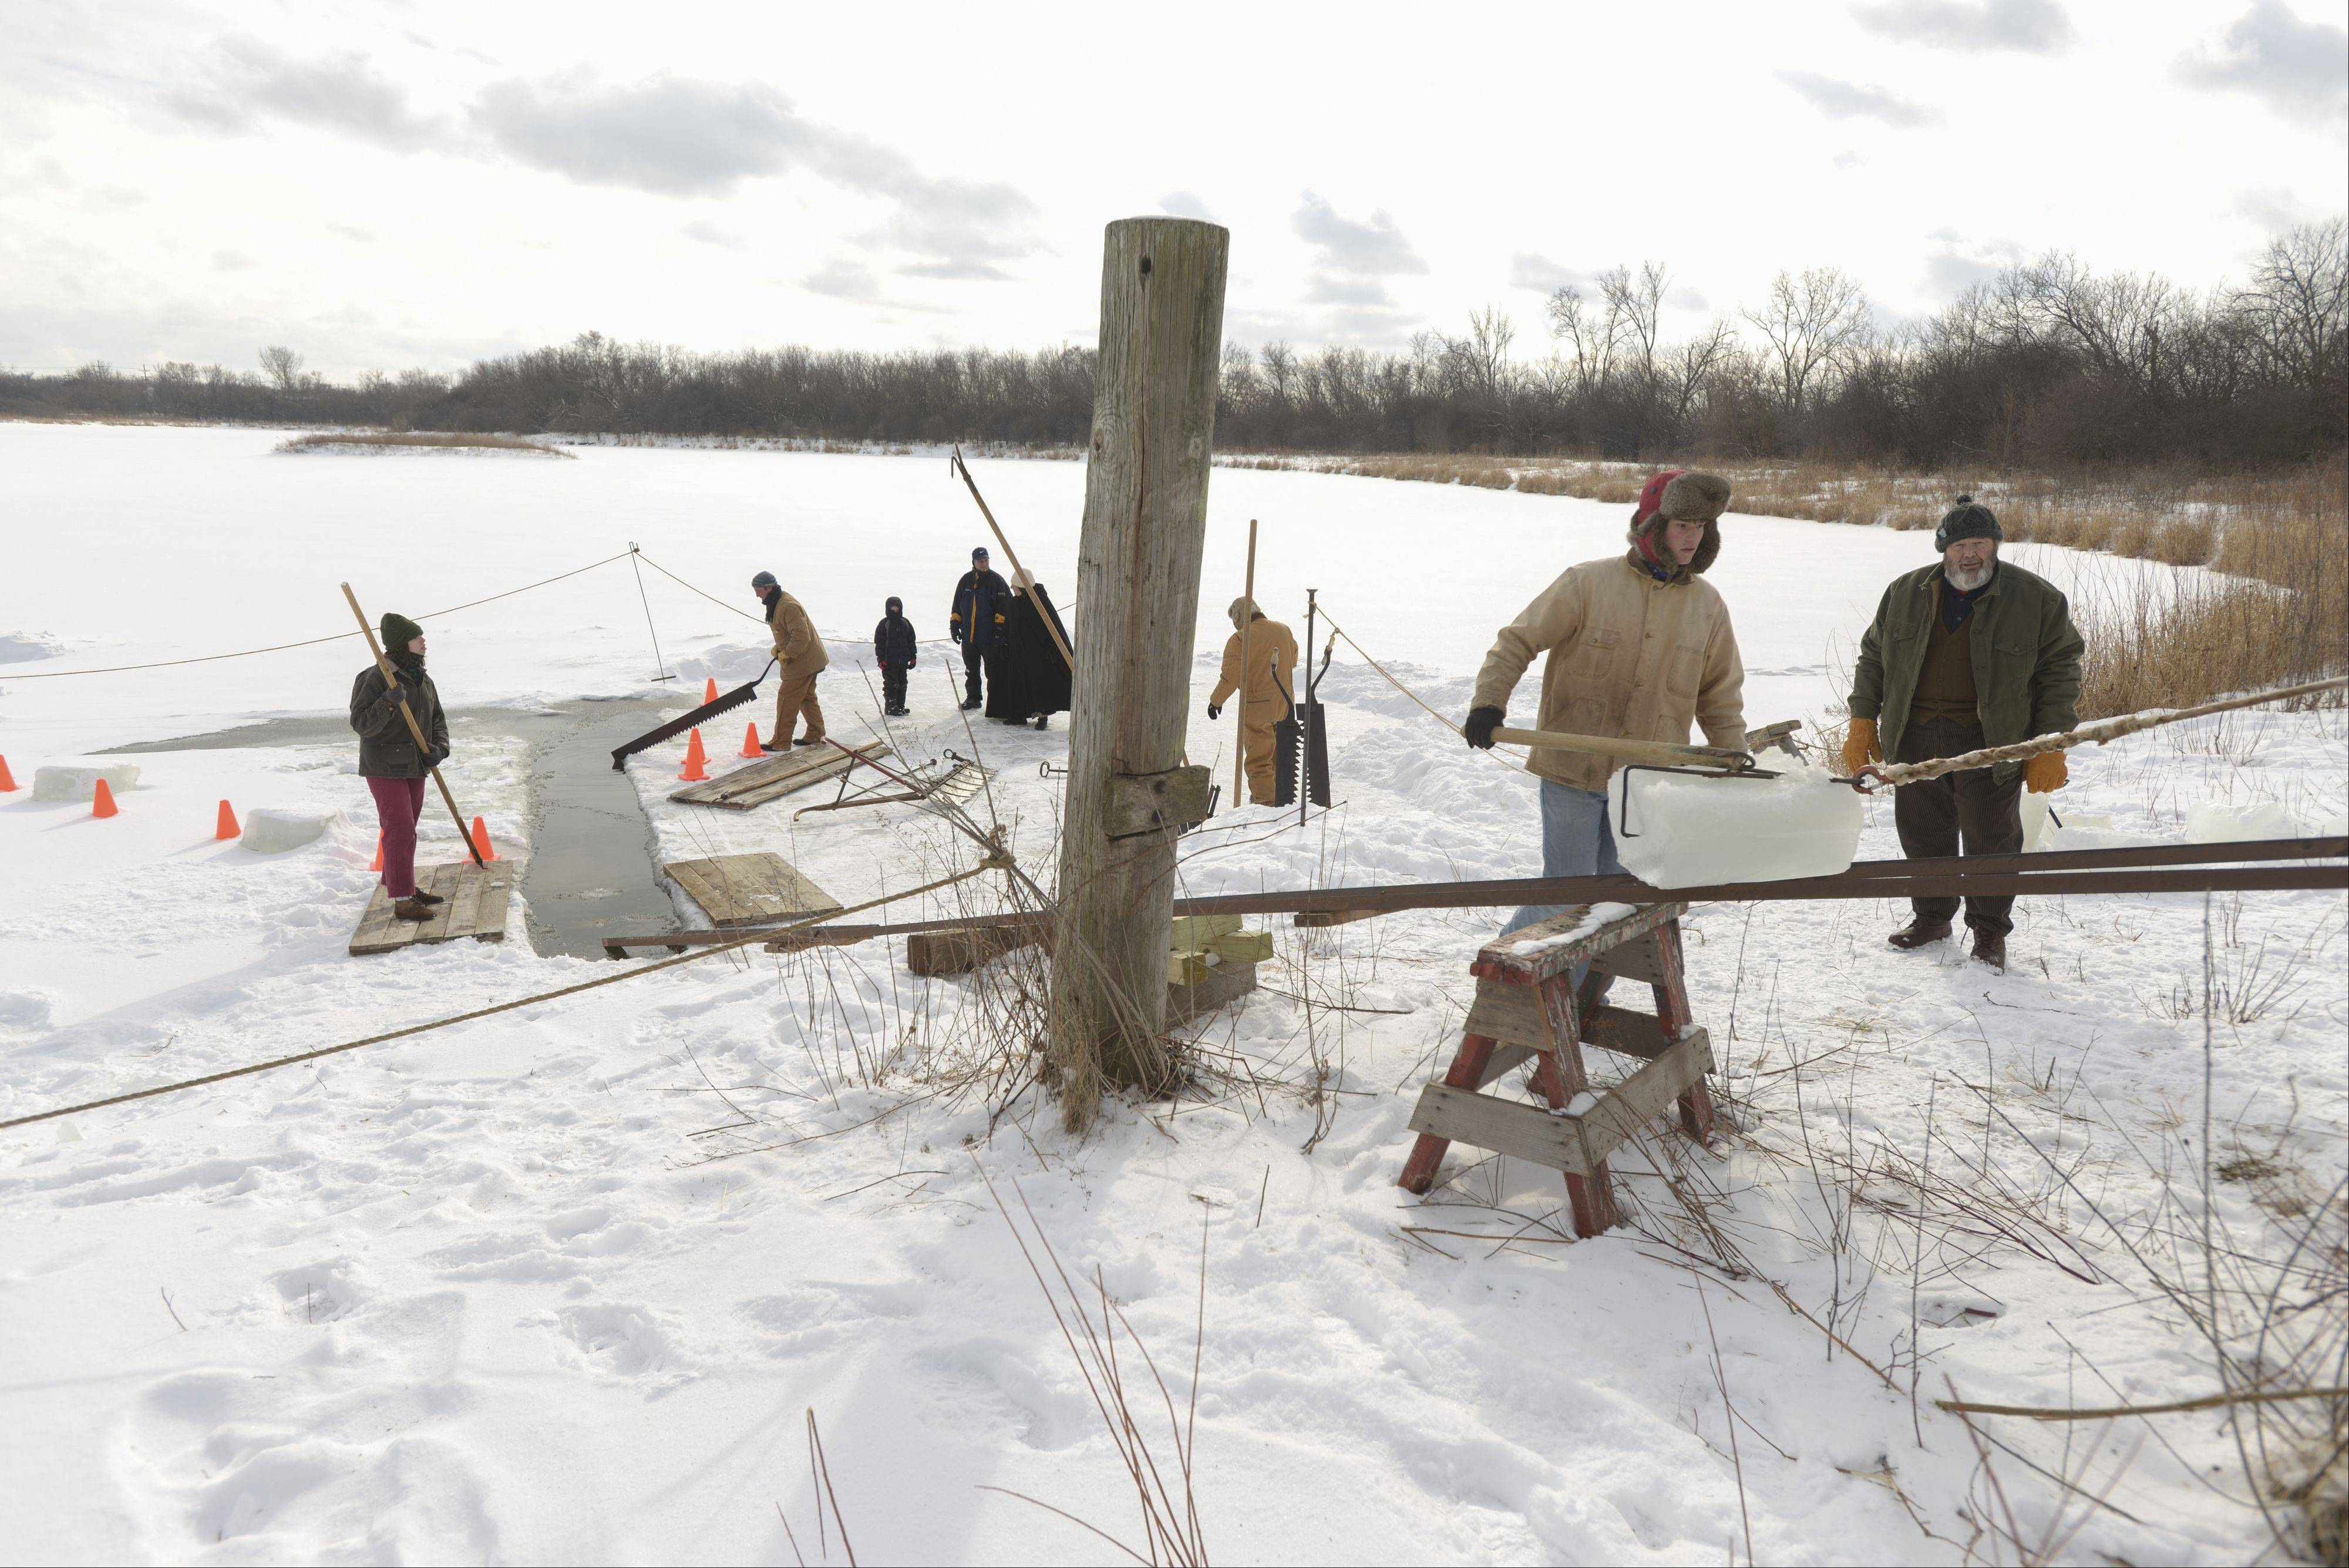 Ice blocks are moved up to a waiting wagon during the Kline Creek Farm's Ice Harvesting event Sunday in West Chicago. Visitors to the 1890s era heritage farm in West Chicago got a firsthand look at how ice was harvested and stored in rural areas before of electrical refrigeration.